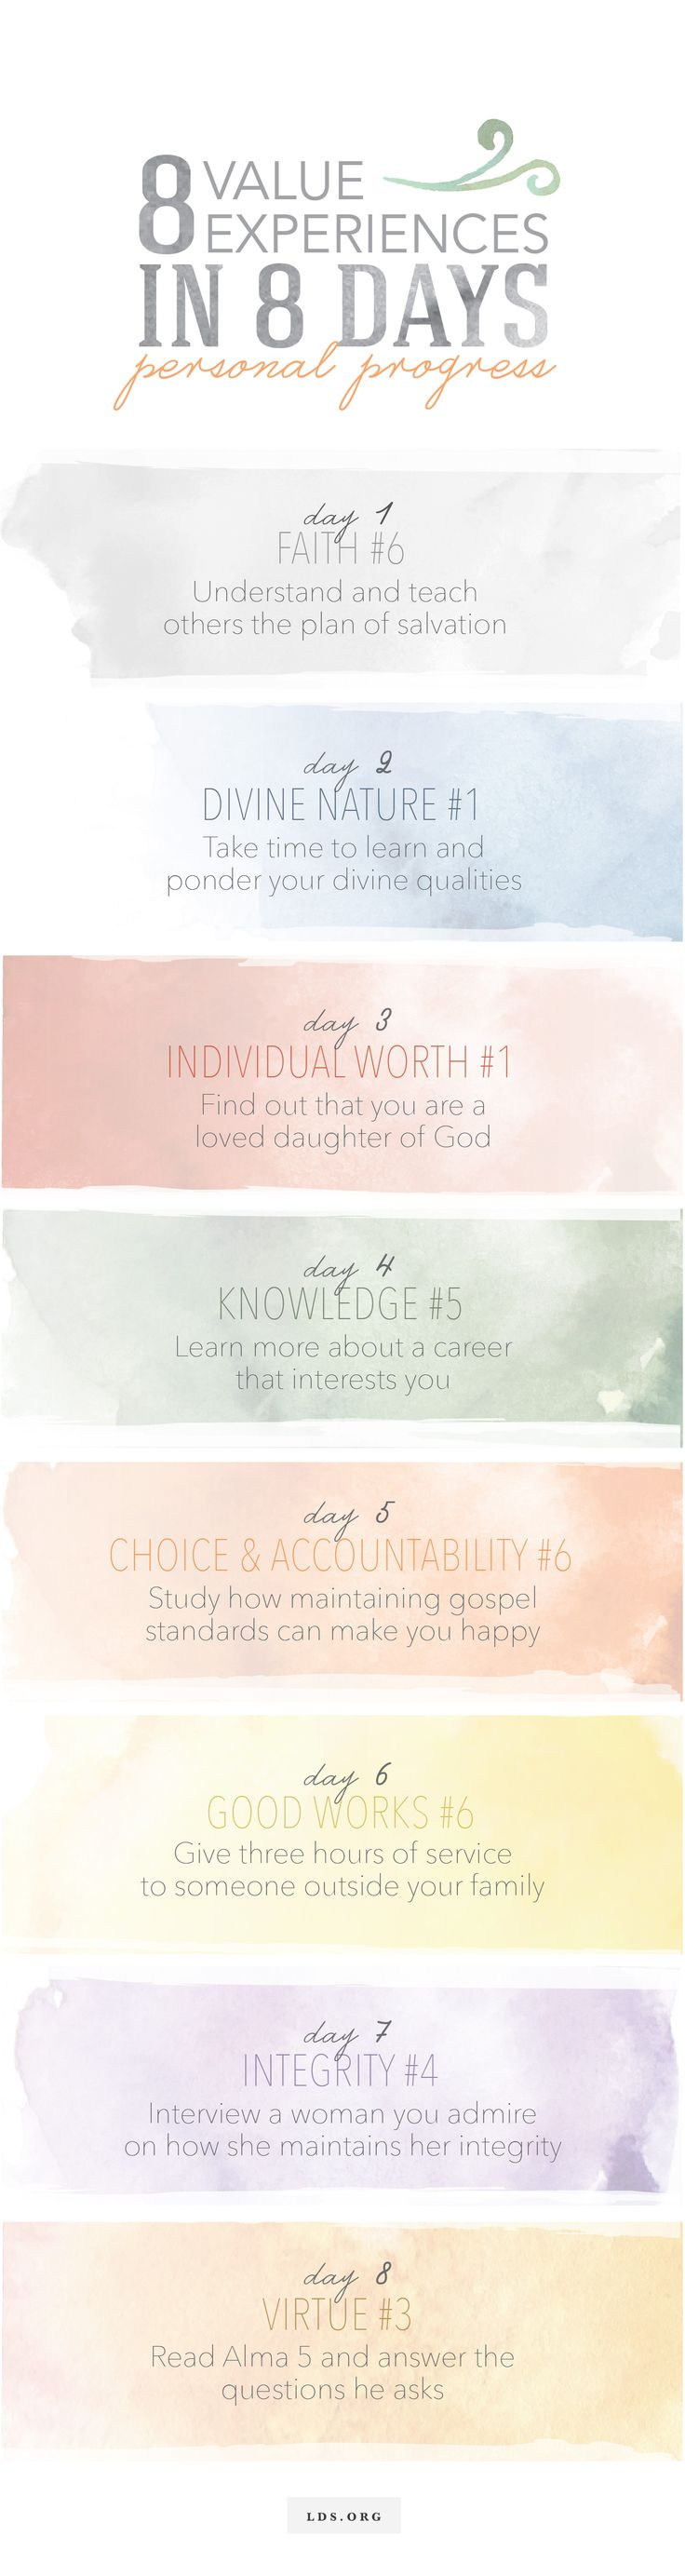 Complete eight personal progress value experiences in eight days. Be sure to look at the handbook for full value requirements. #LDS